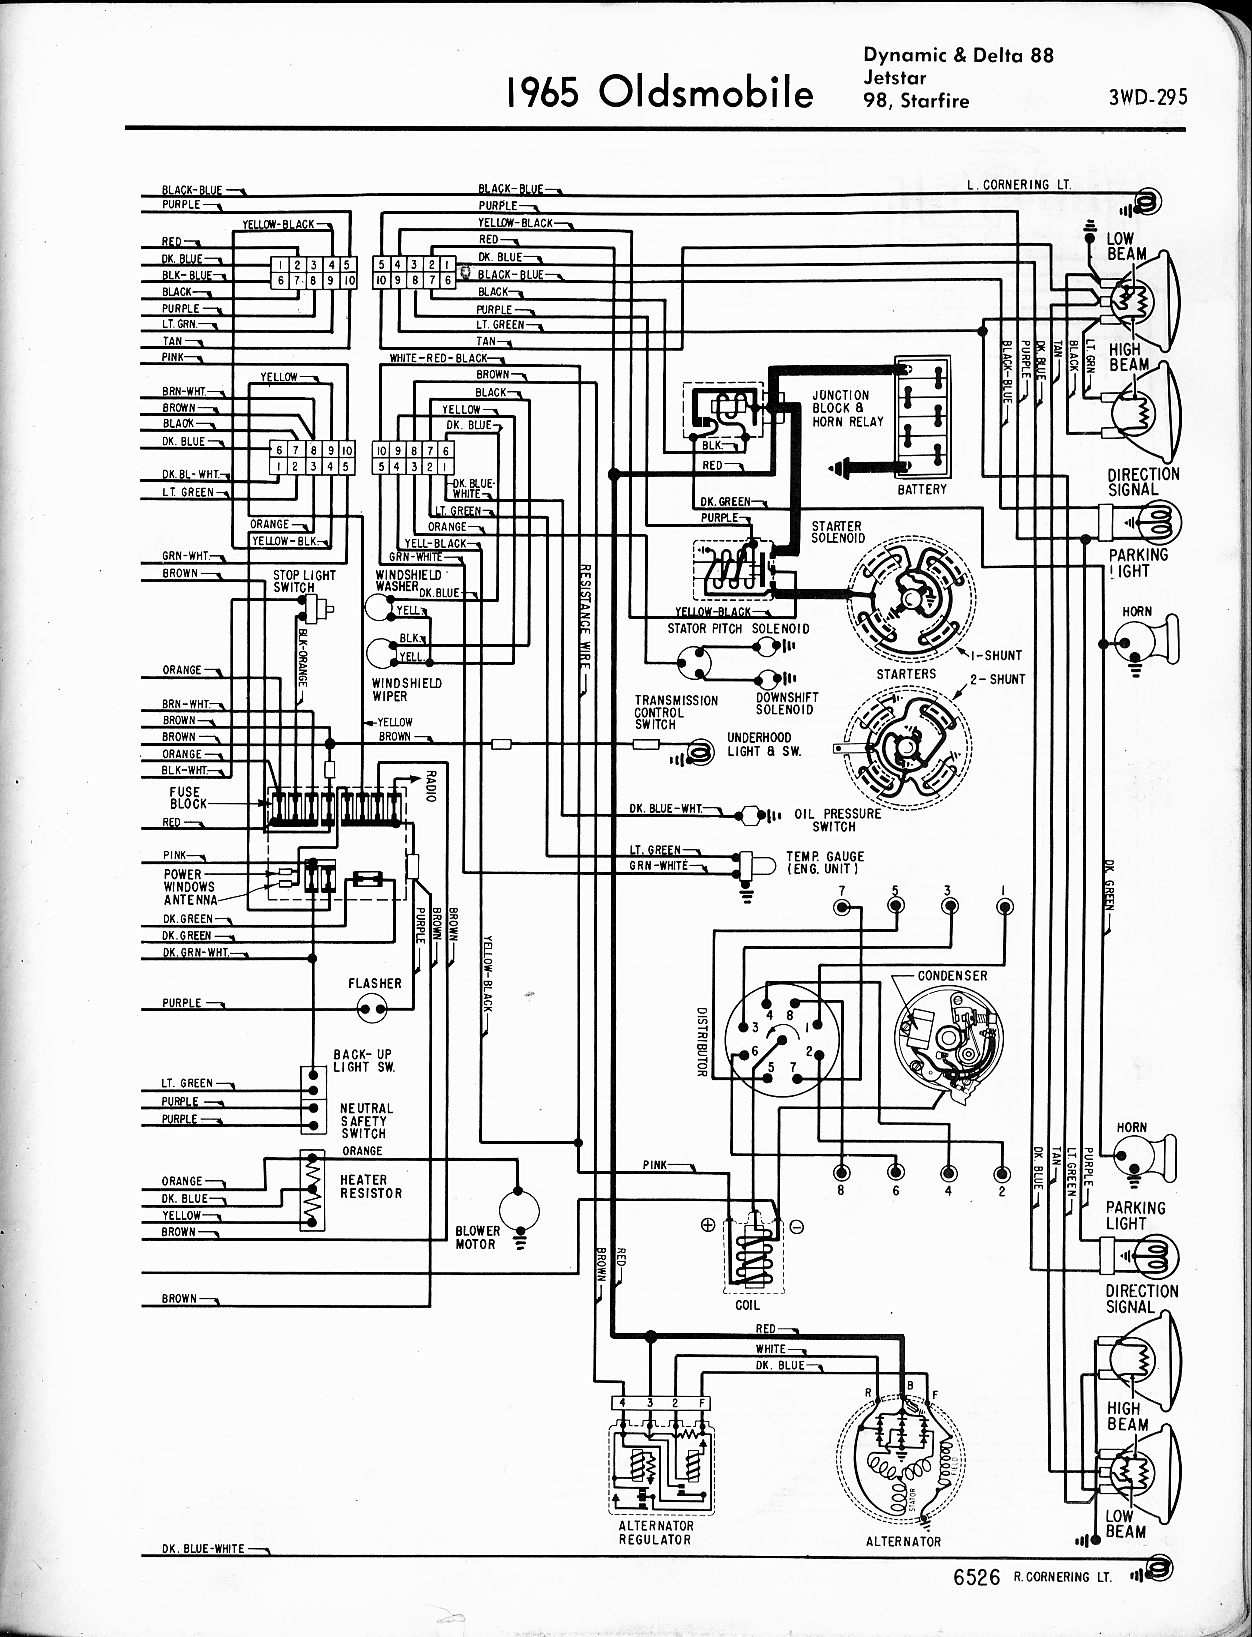 1968 Ford Mustang Dimensions moreover 1965 Mustang Wiper Motor Wiring Diagram likewise 3rd Gen Camaro Dual Exhaust System likewise 1969 Camaro Wiring Diagram together with History Old C ers. on 1969 camaro fog light